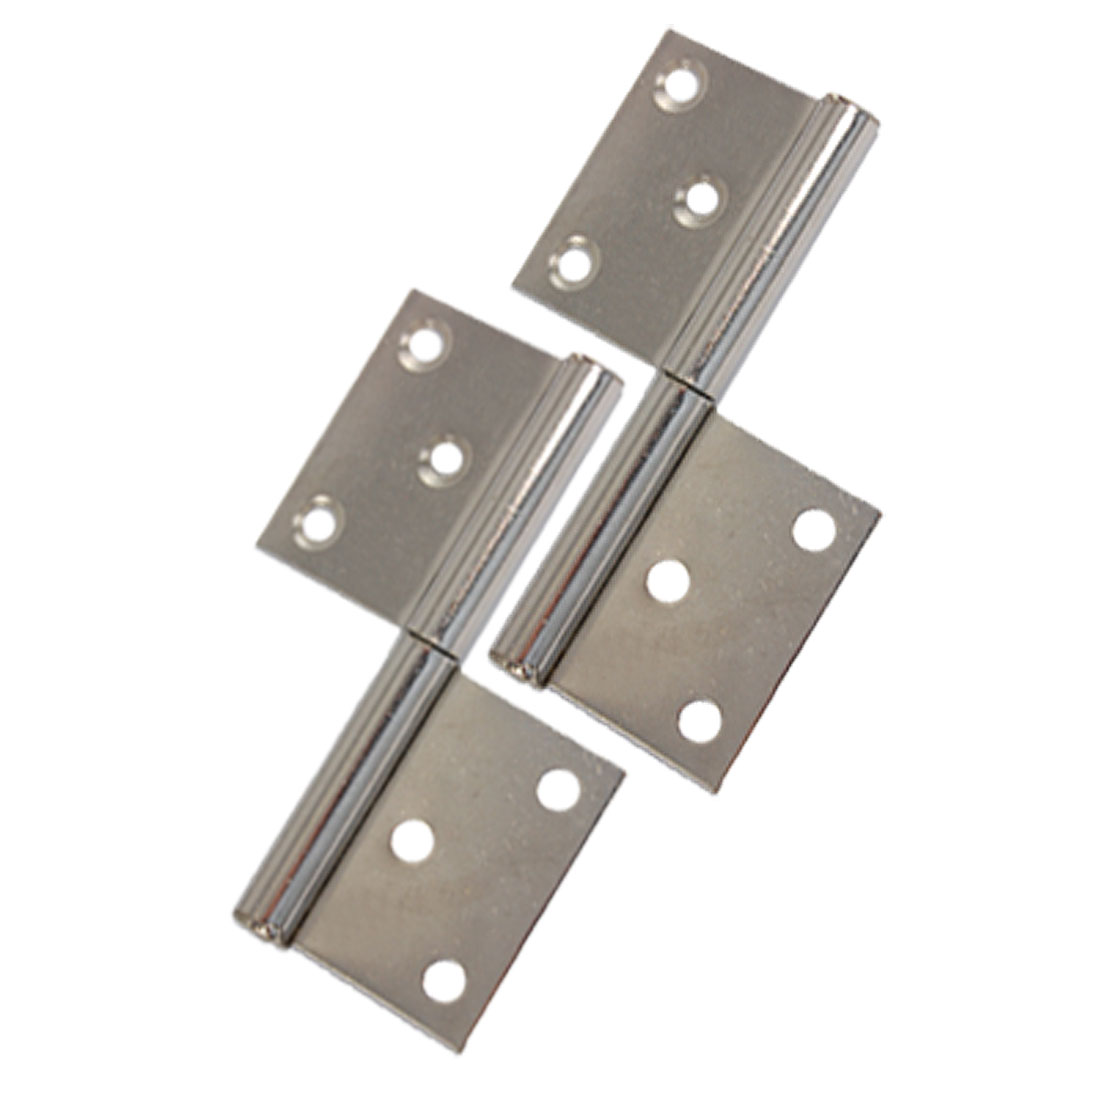 2 Pcs Polished Metal Two Leaves Door Gates Flag Hinges